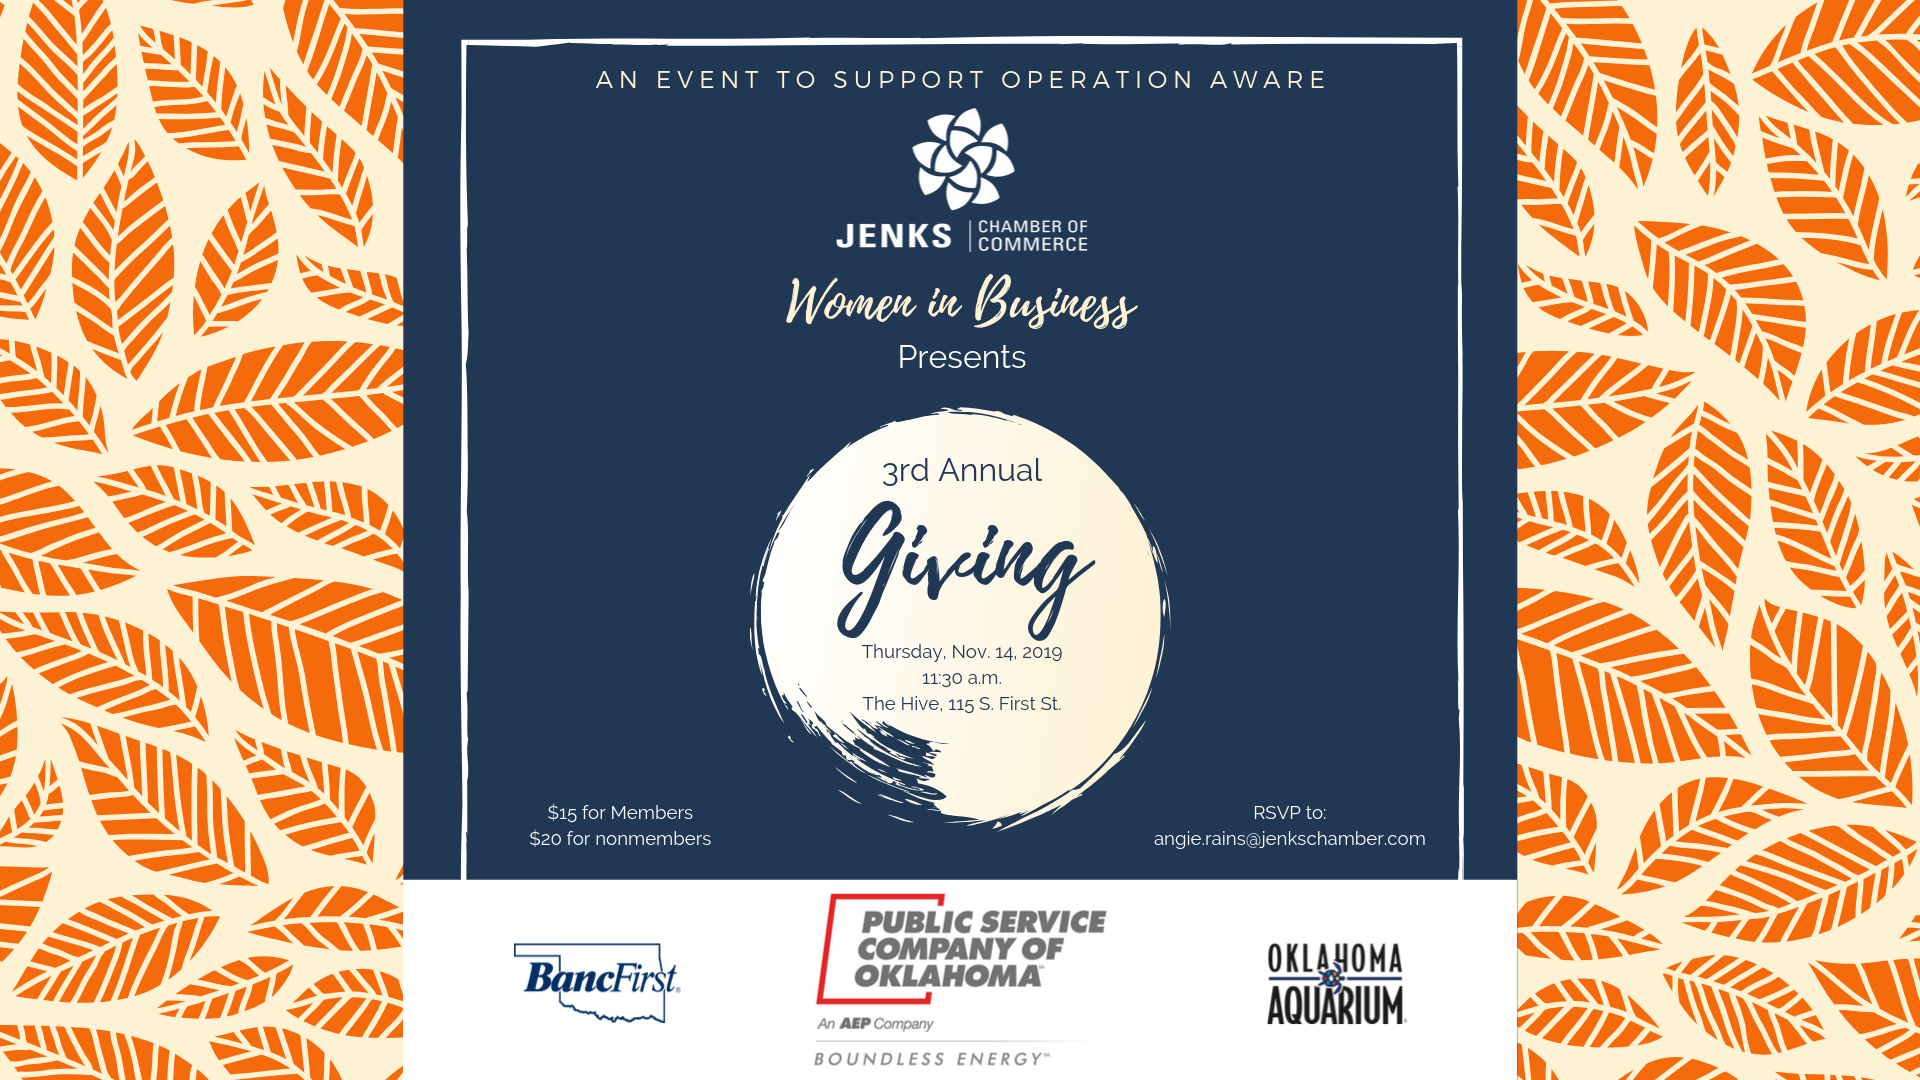 Event logo for the Women in Business Giving event Nov. 14